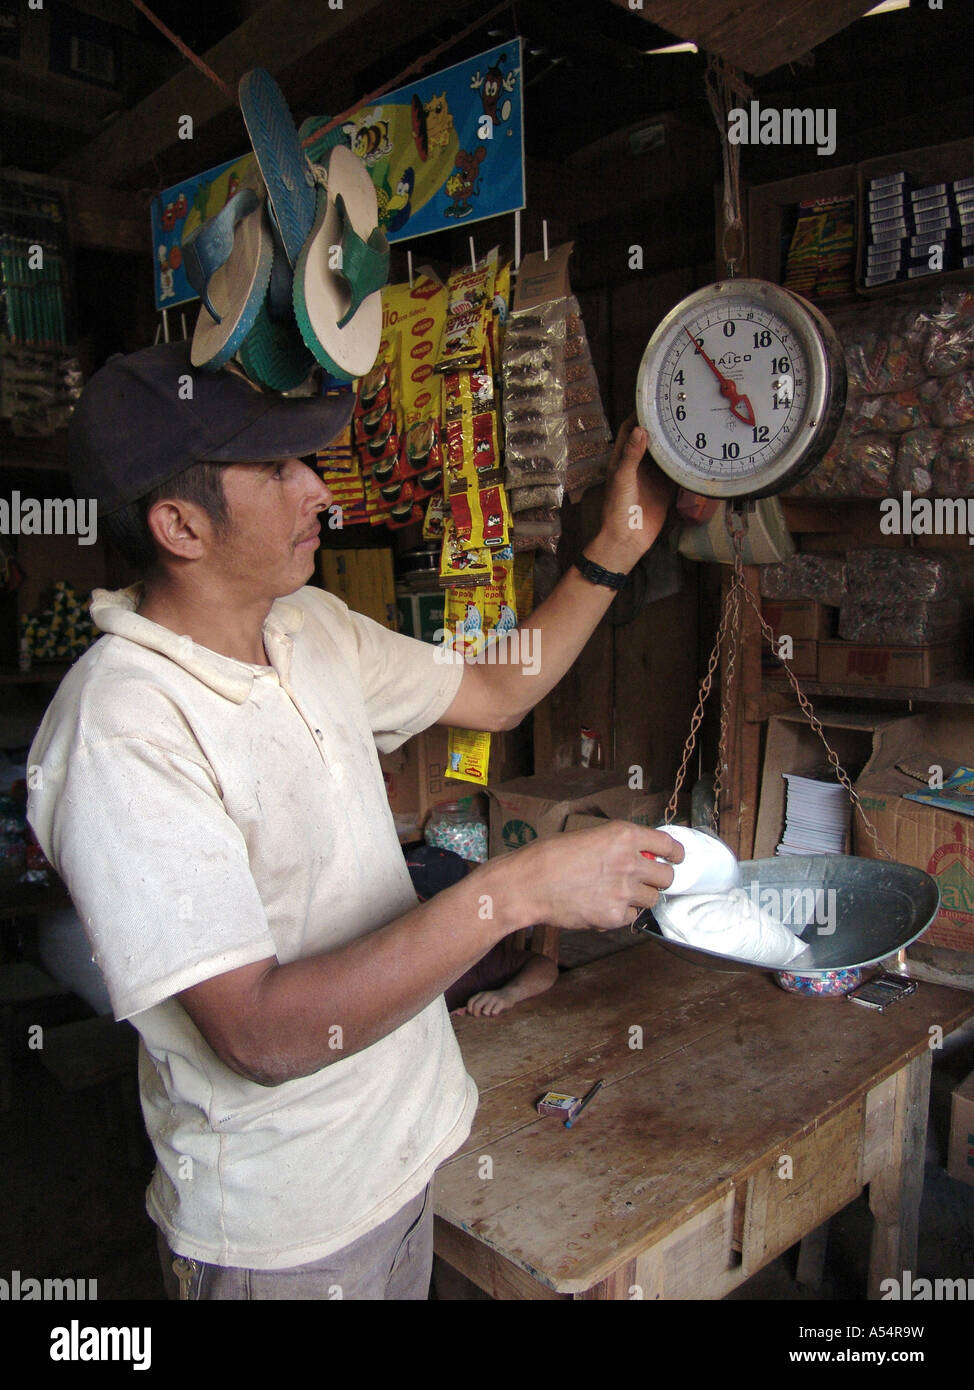 Painet ip1864 honduras man weighing sugar small village shop marcala country  developing nation less economically developed 46051a2b3ce